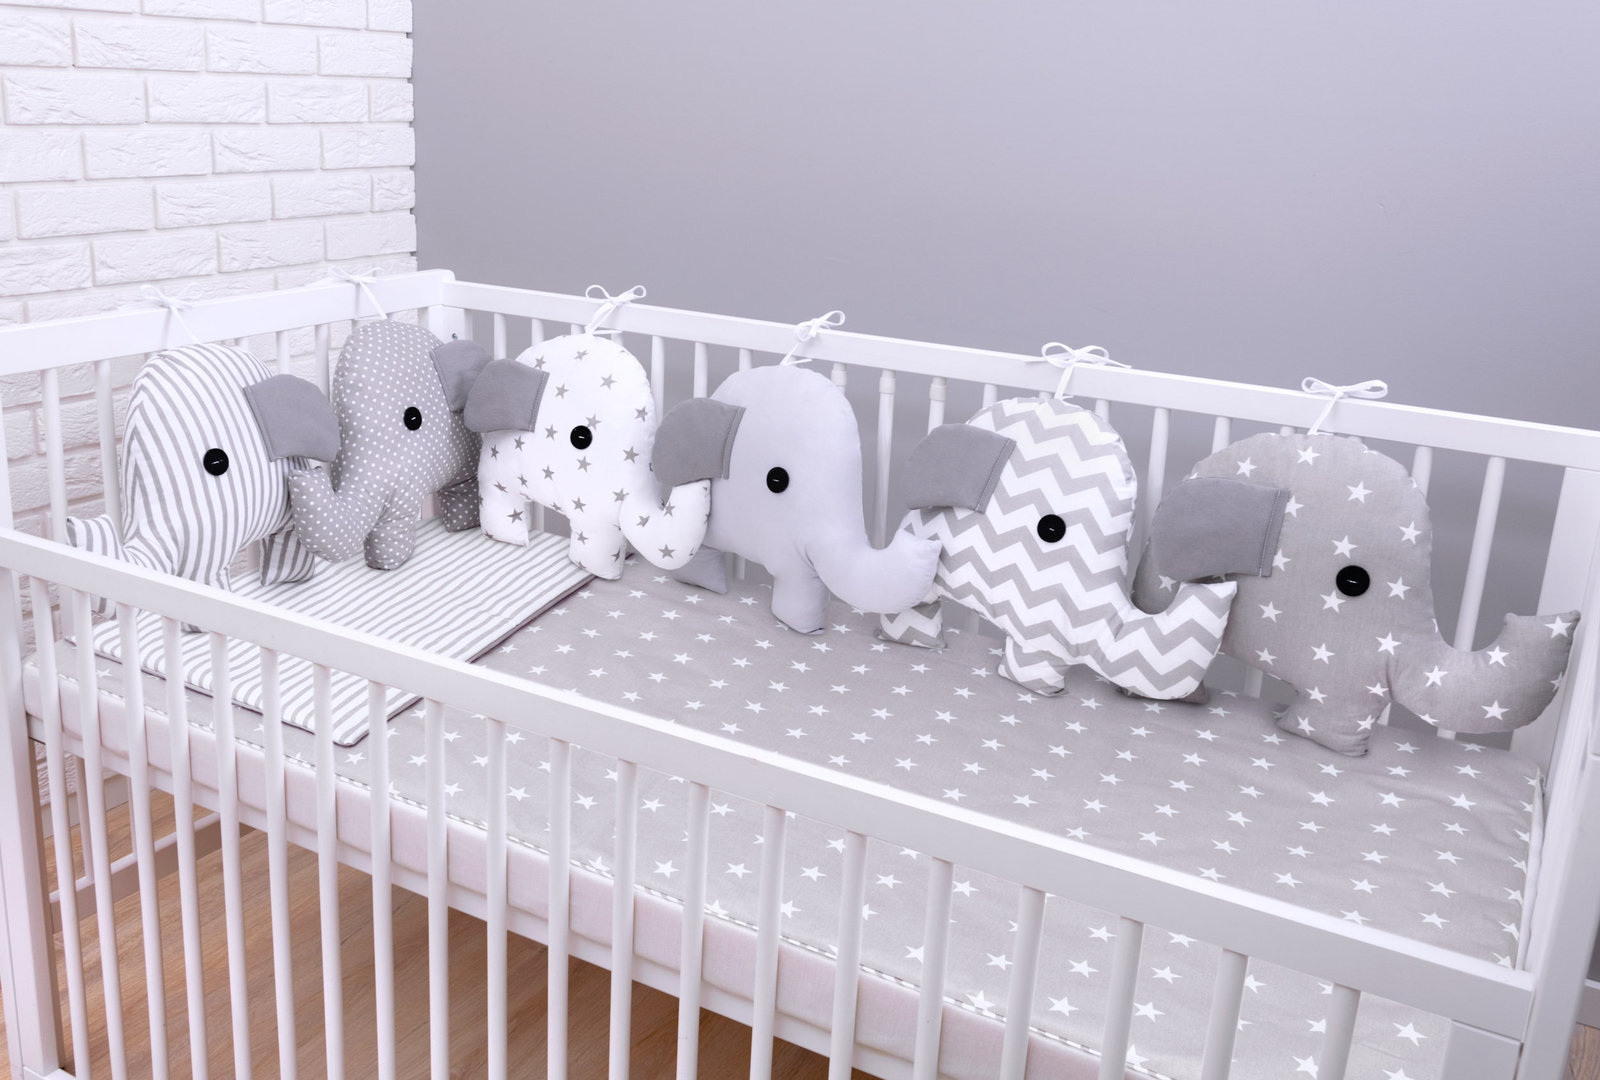 Baby Bettwäsche Design Elefant 05 Bettset 100x135 Amilian